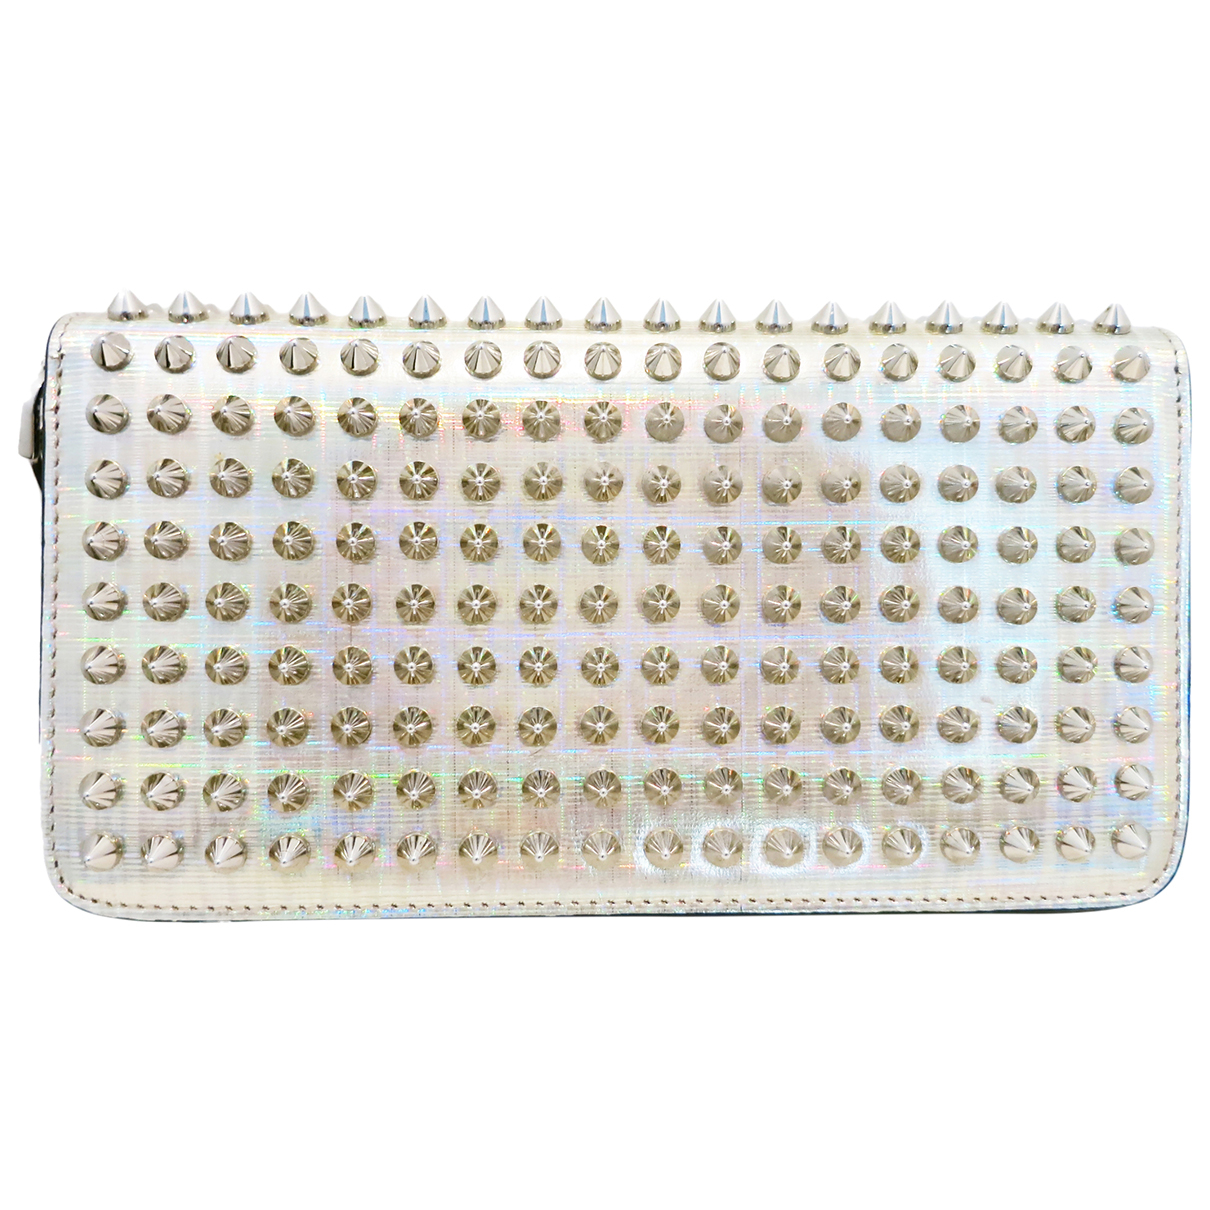 Christian Louboutin Panettone Silver Patent leather wallet for Women N